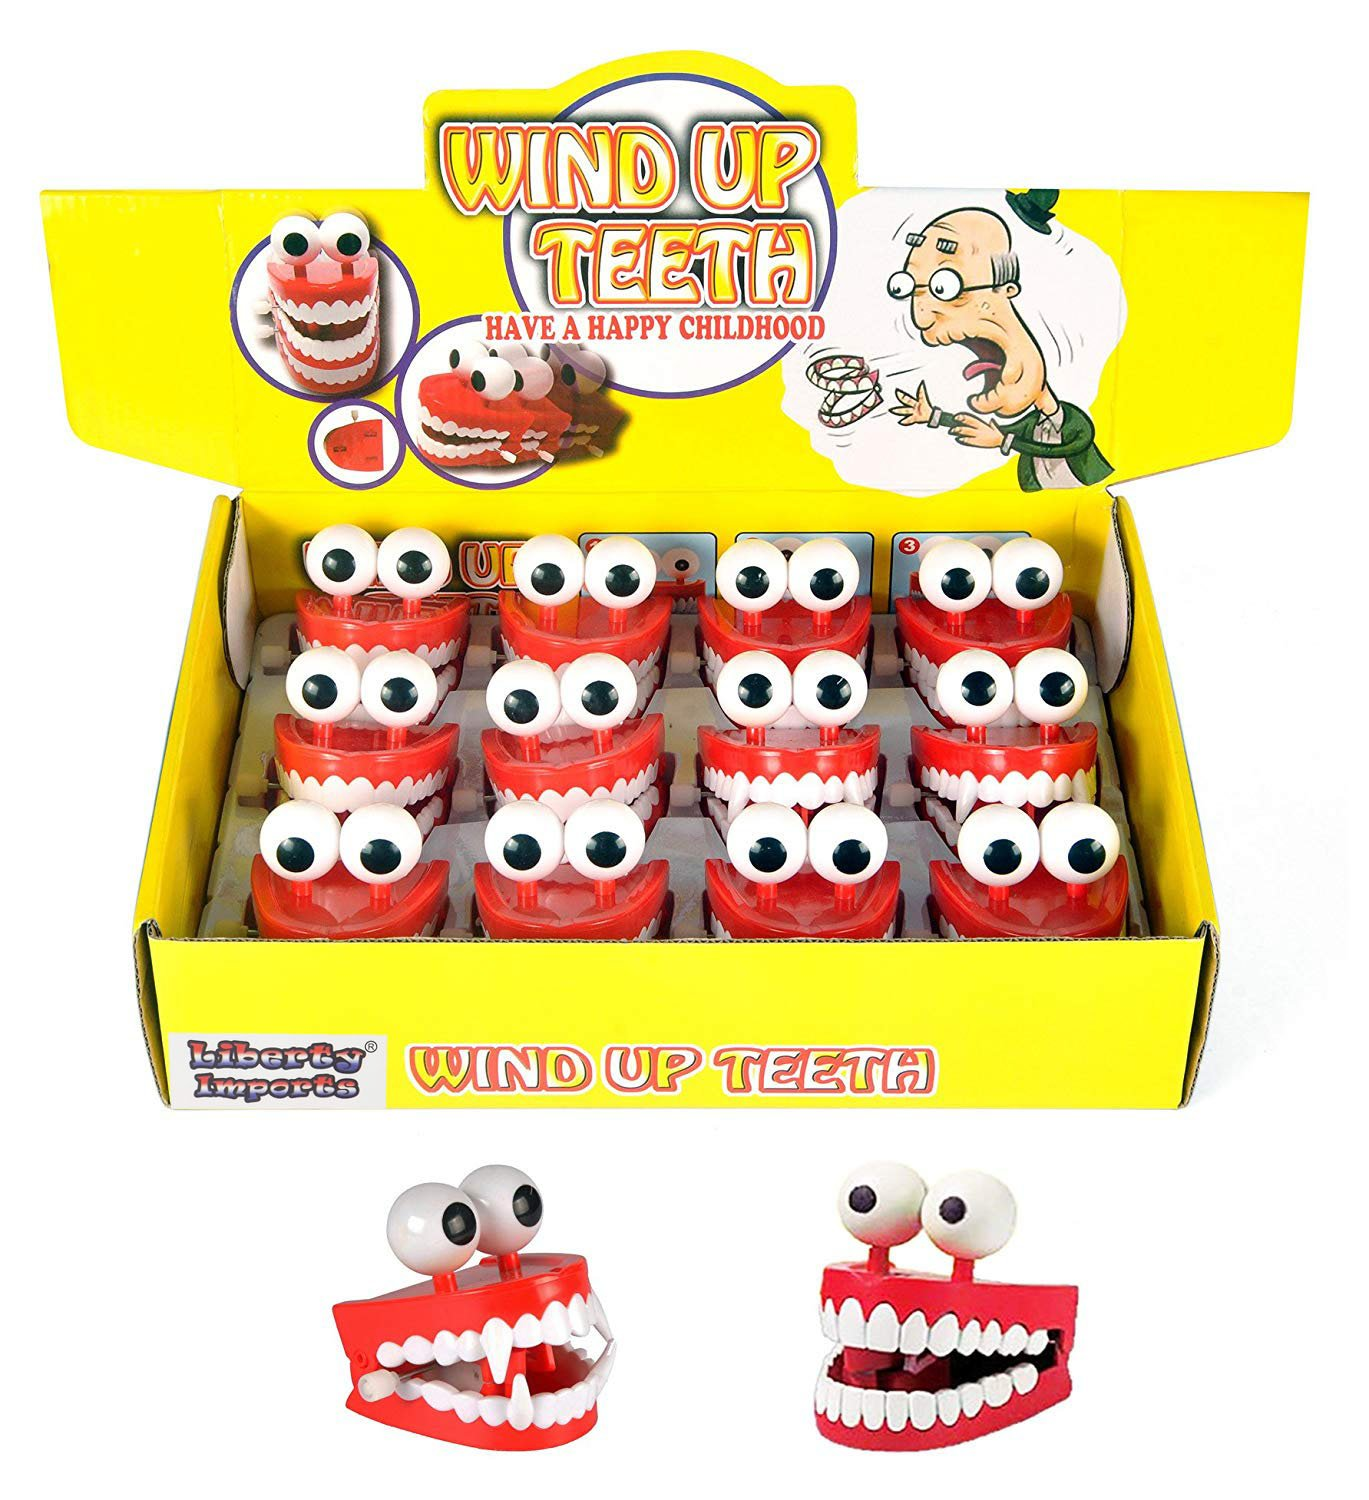 Liberty Imports 12 Pack Wind-up Chattering Chomping Walking Teeth with Eyes - Halloween Toy Novelty Party Favors Kids Gag Gifts (One Dozen - 6 Vampire + 6 Regular)